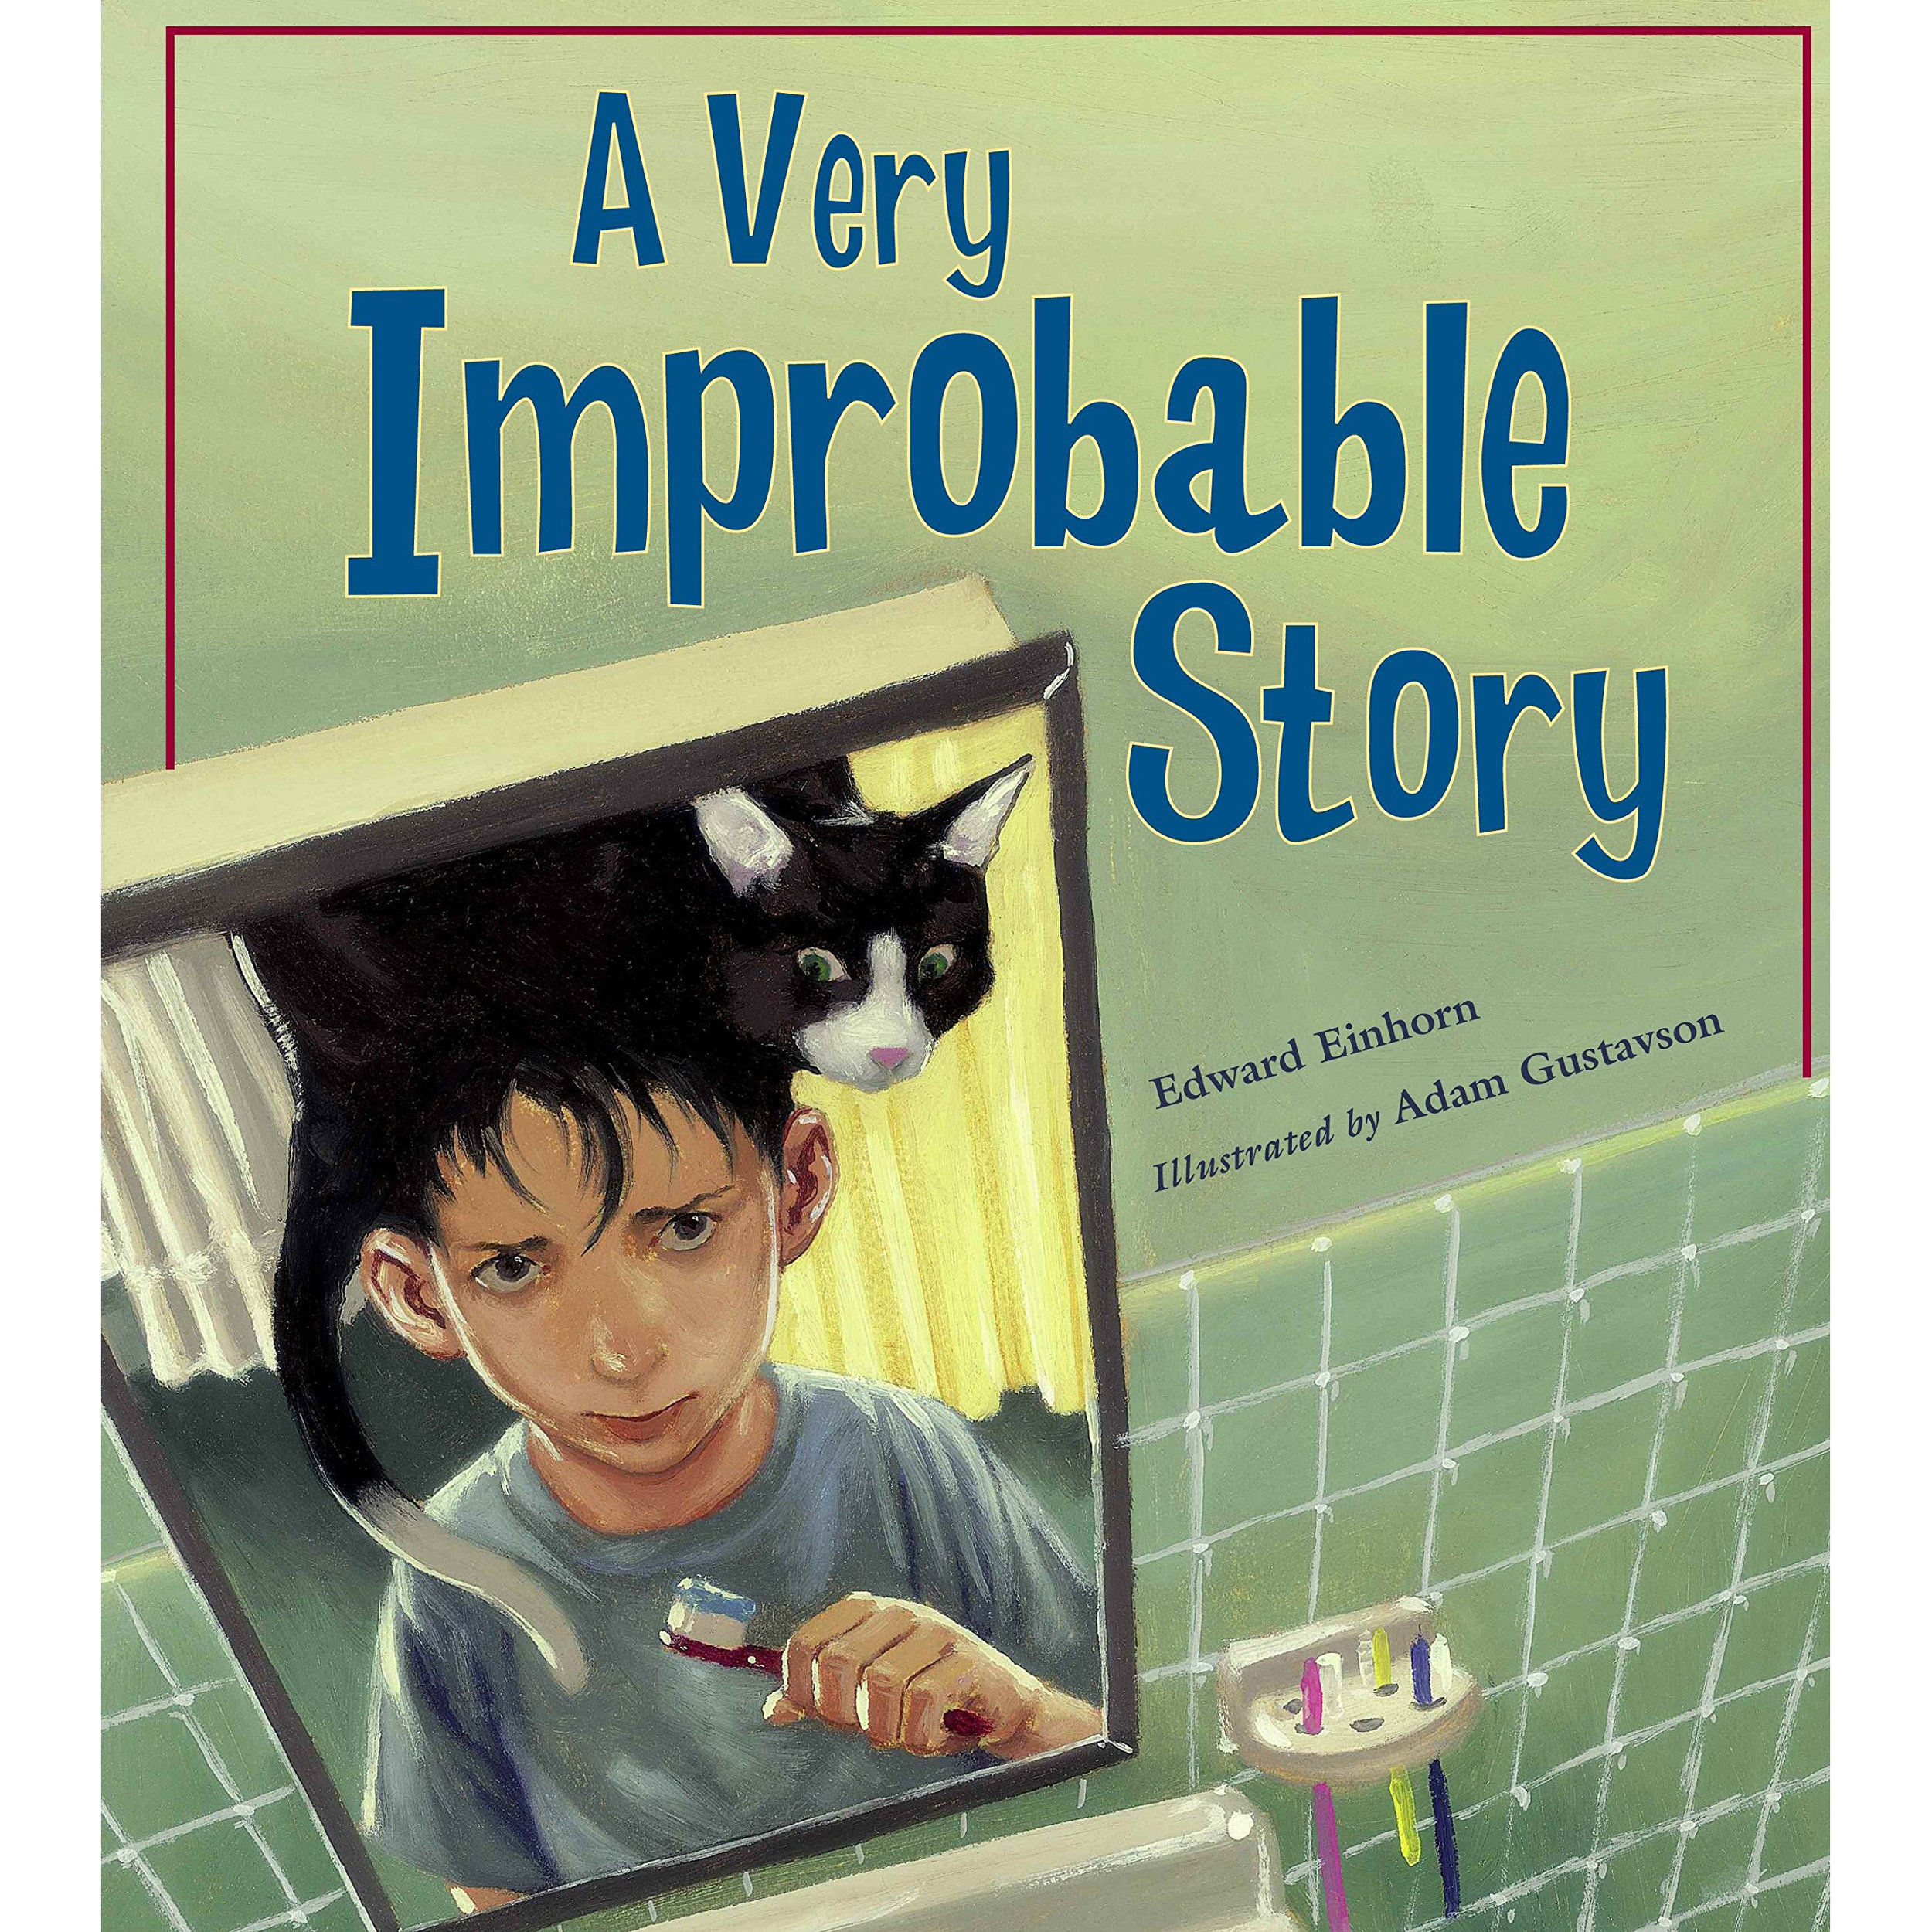 A Very Improbable Story - Ethan wakes up one morning to find a very strange cat named Odds stuck on his head. Odds refuses to budge until Ethan wins a game of probability. Without looking, Ethan must pick out a dime from his coin collection or matching socks from his dresser, or do something else improbable. If he doesn't, Odds is there to stay, and Ethan has a 100% chance of missing his big soccer game. A very improbable story about a challenging math concept. Illustrated by Adam Gustavson.